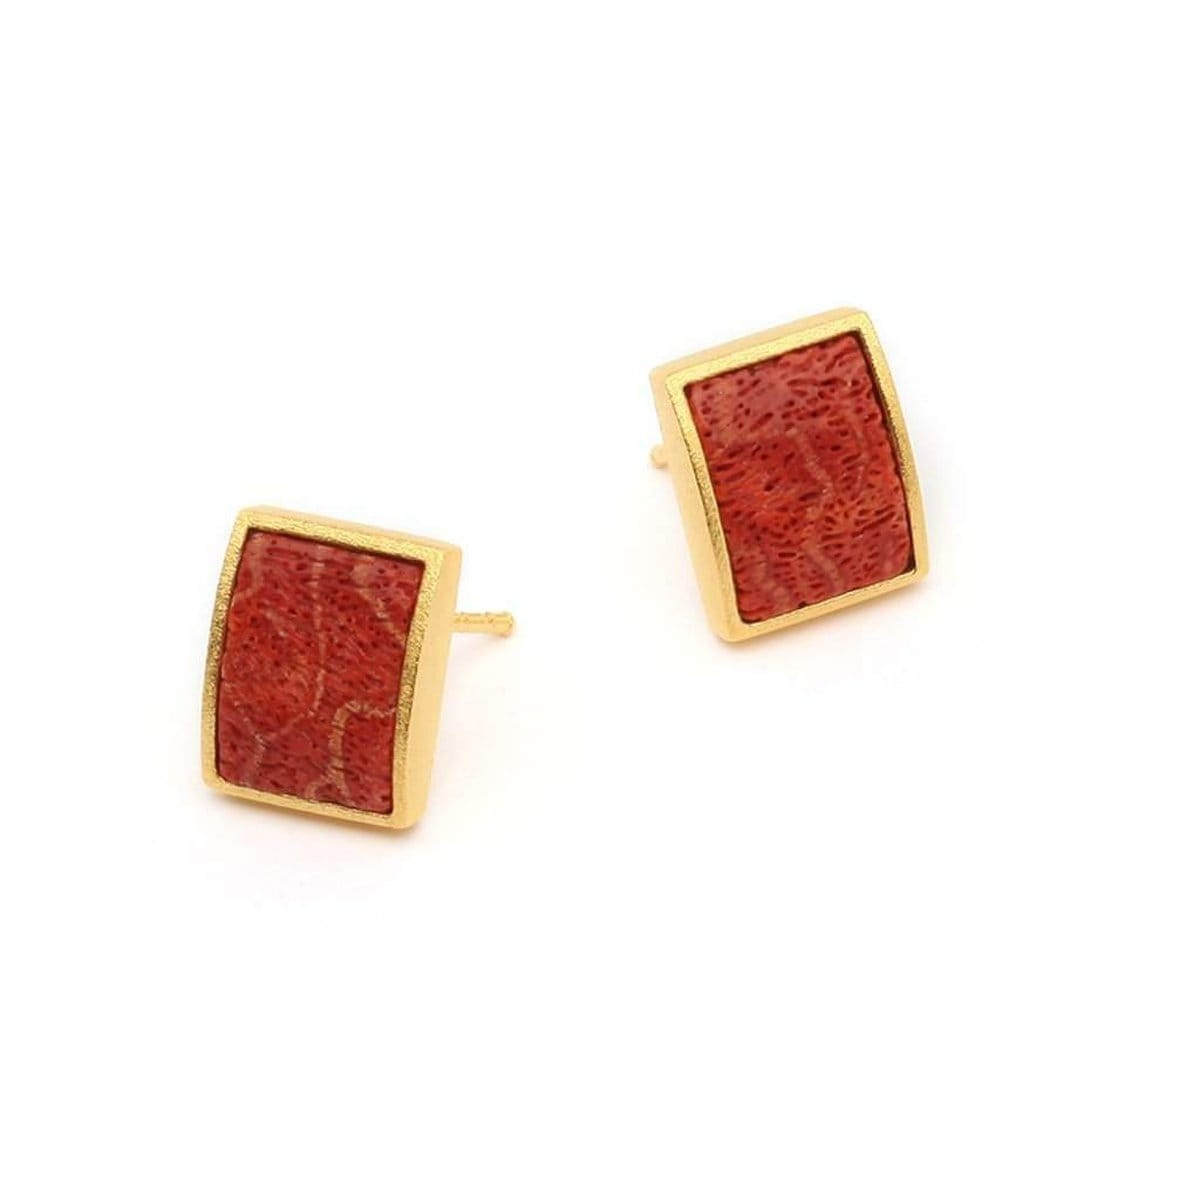 Colano Coral Earrings - 19250296-Bernd Wolf-Renee Taylor Gallery